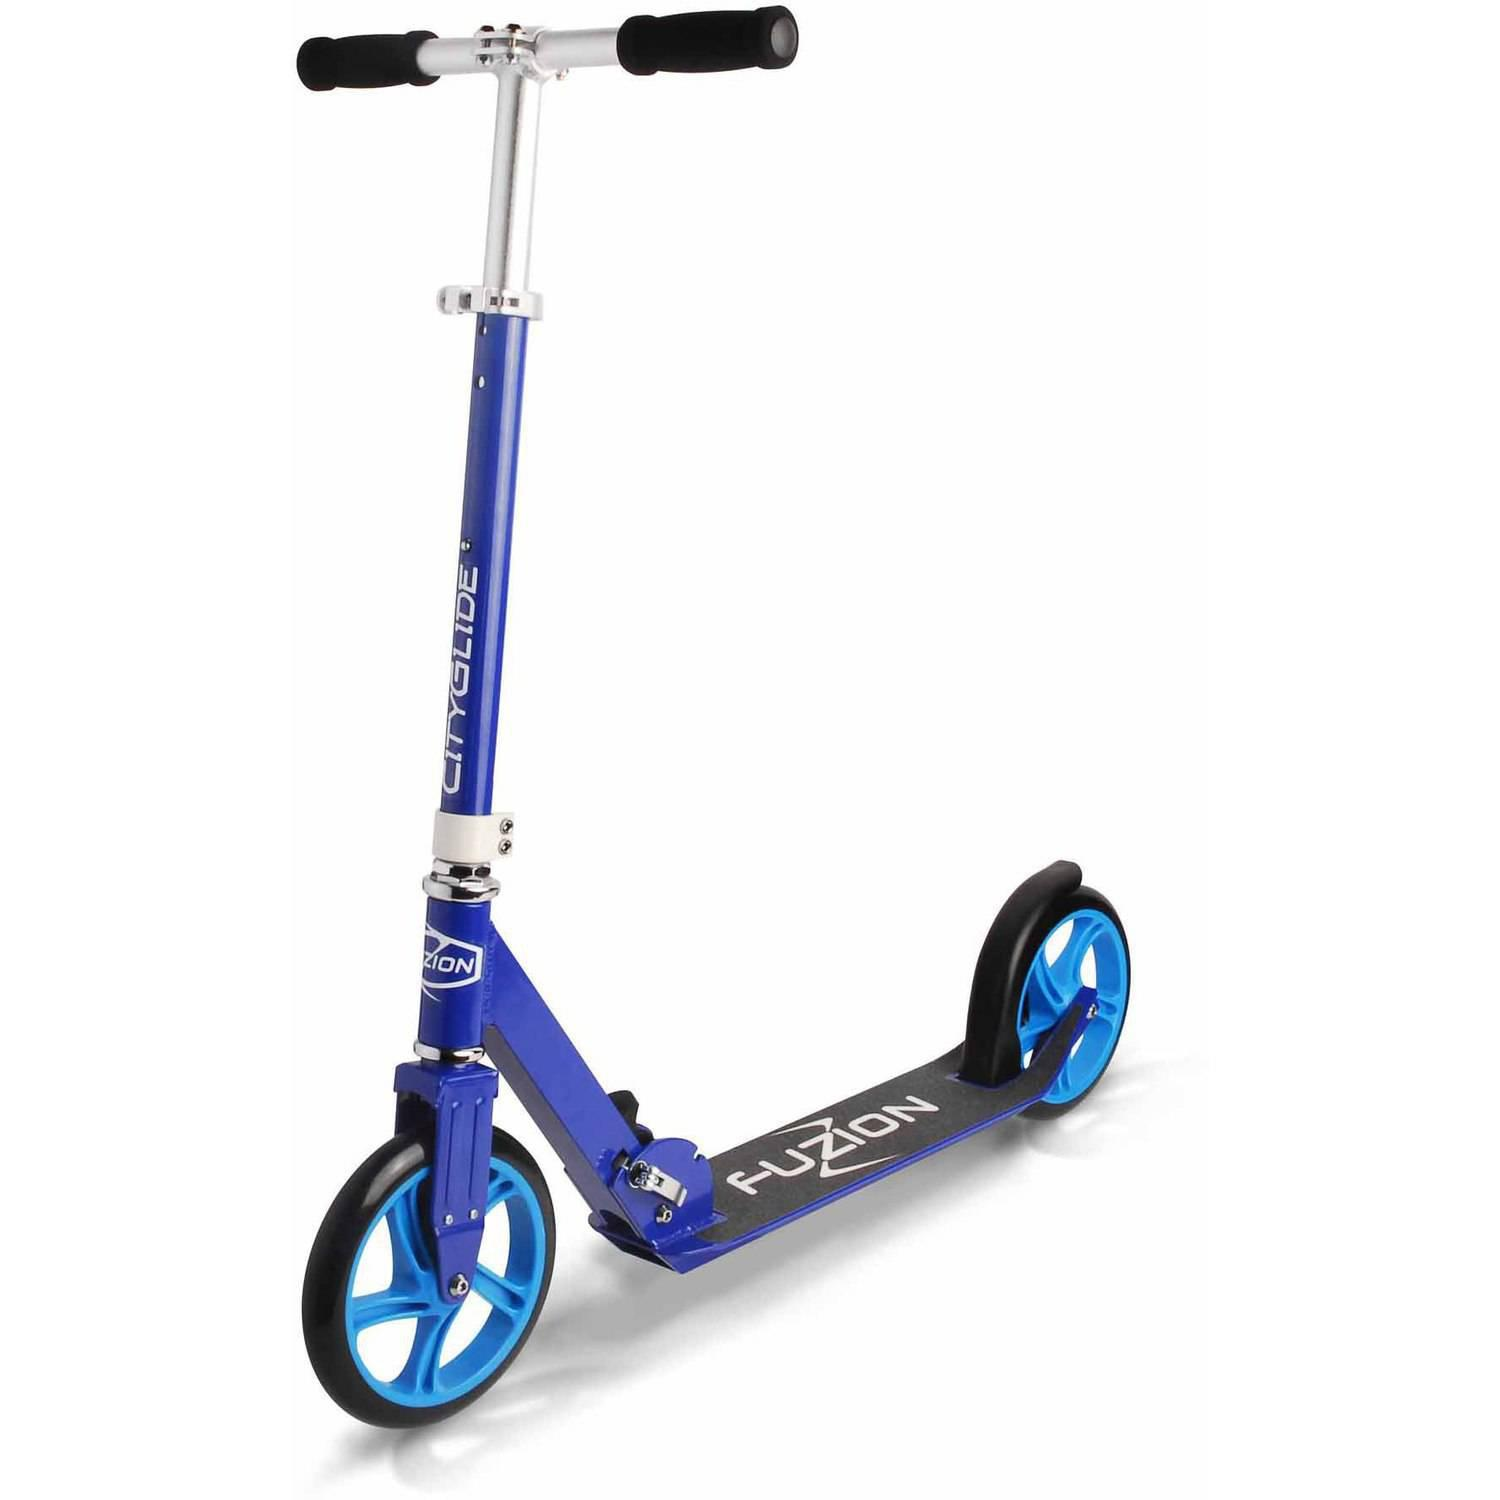 Fuzion CityGlide Cruising Scooter, Blue